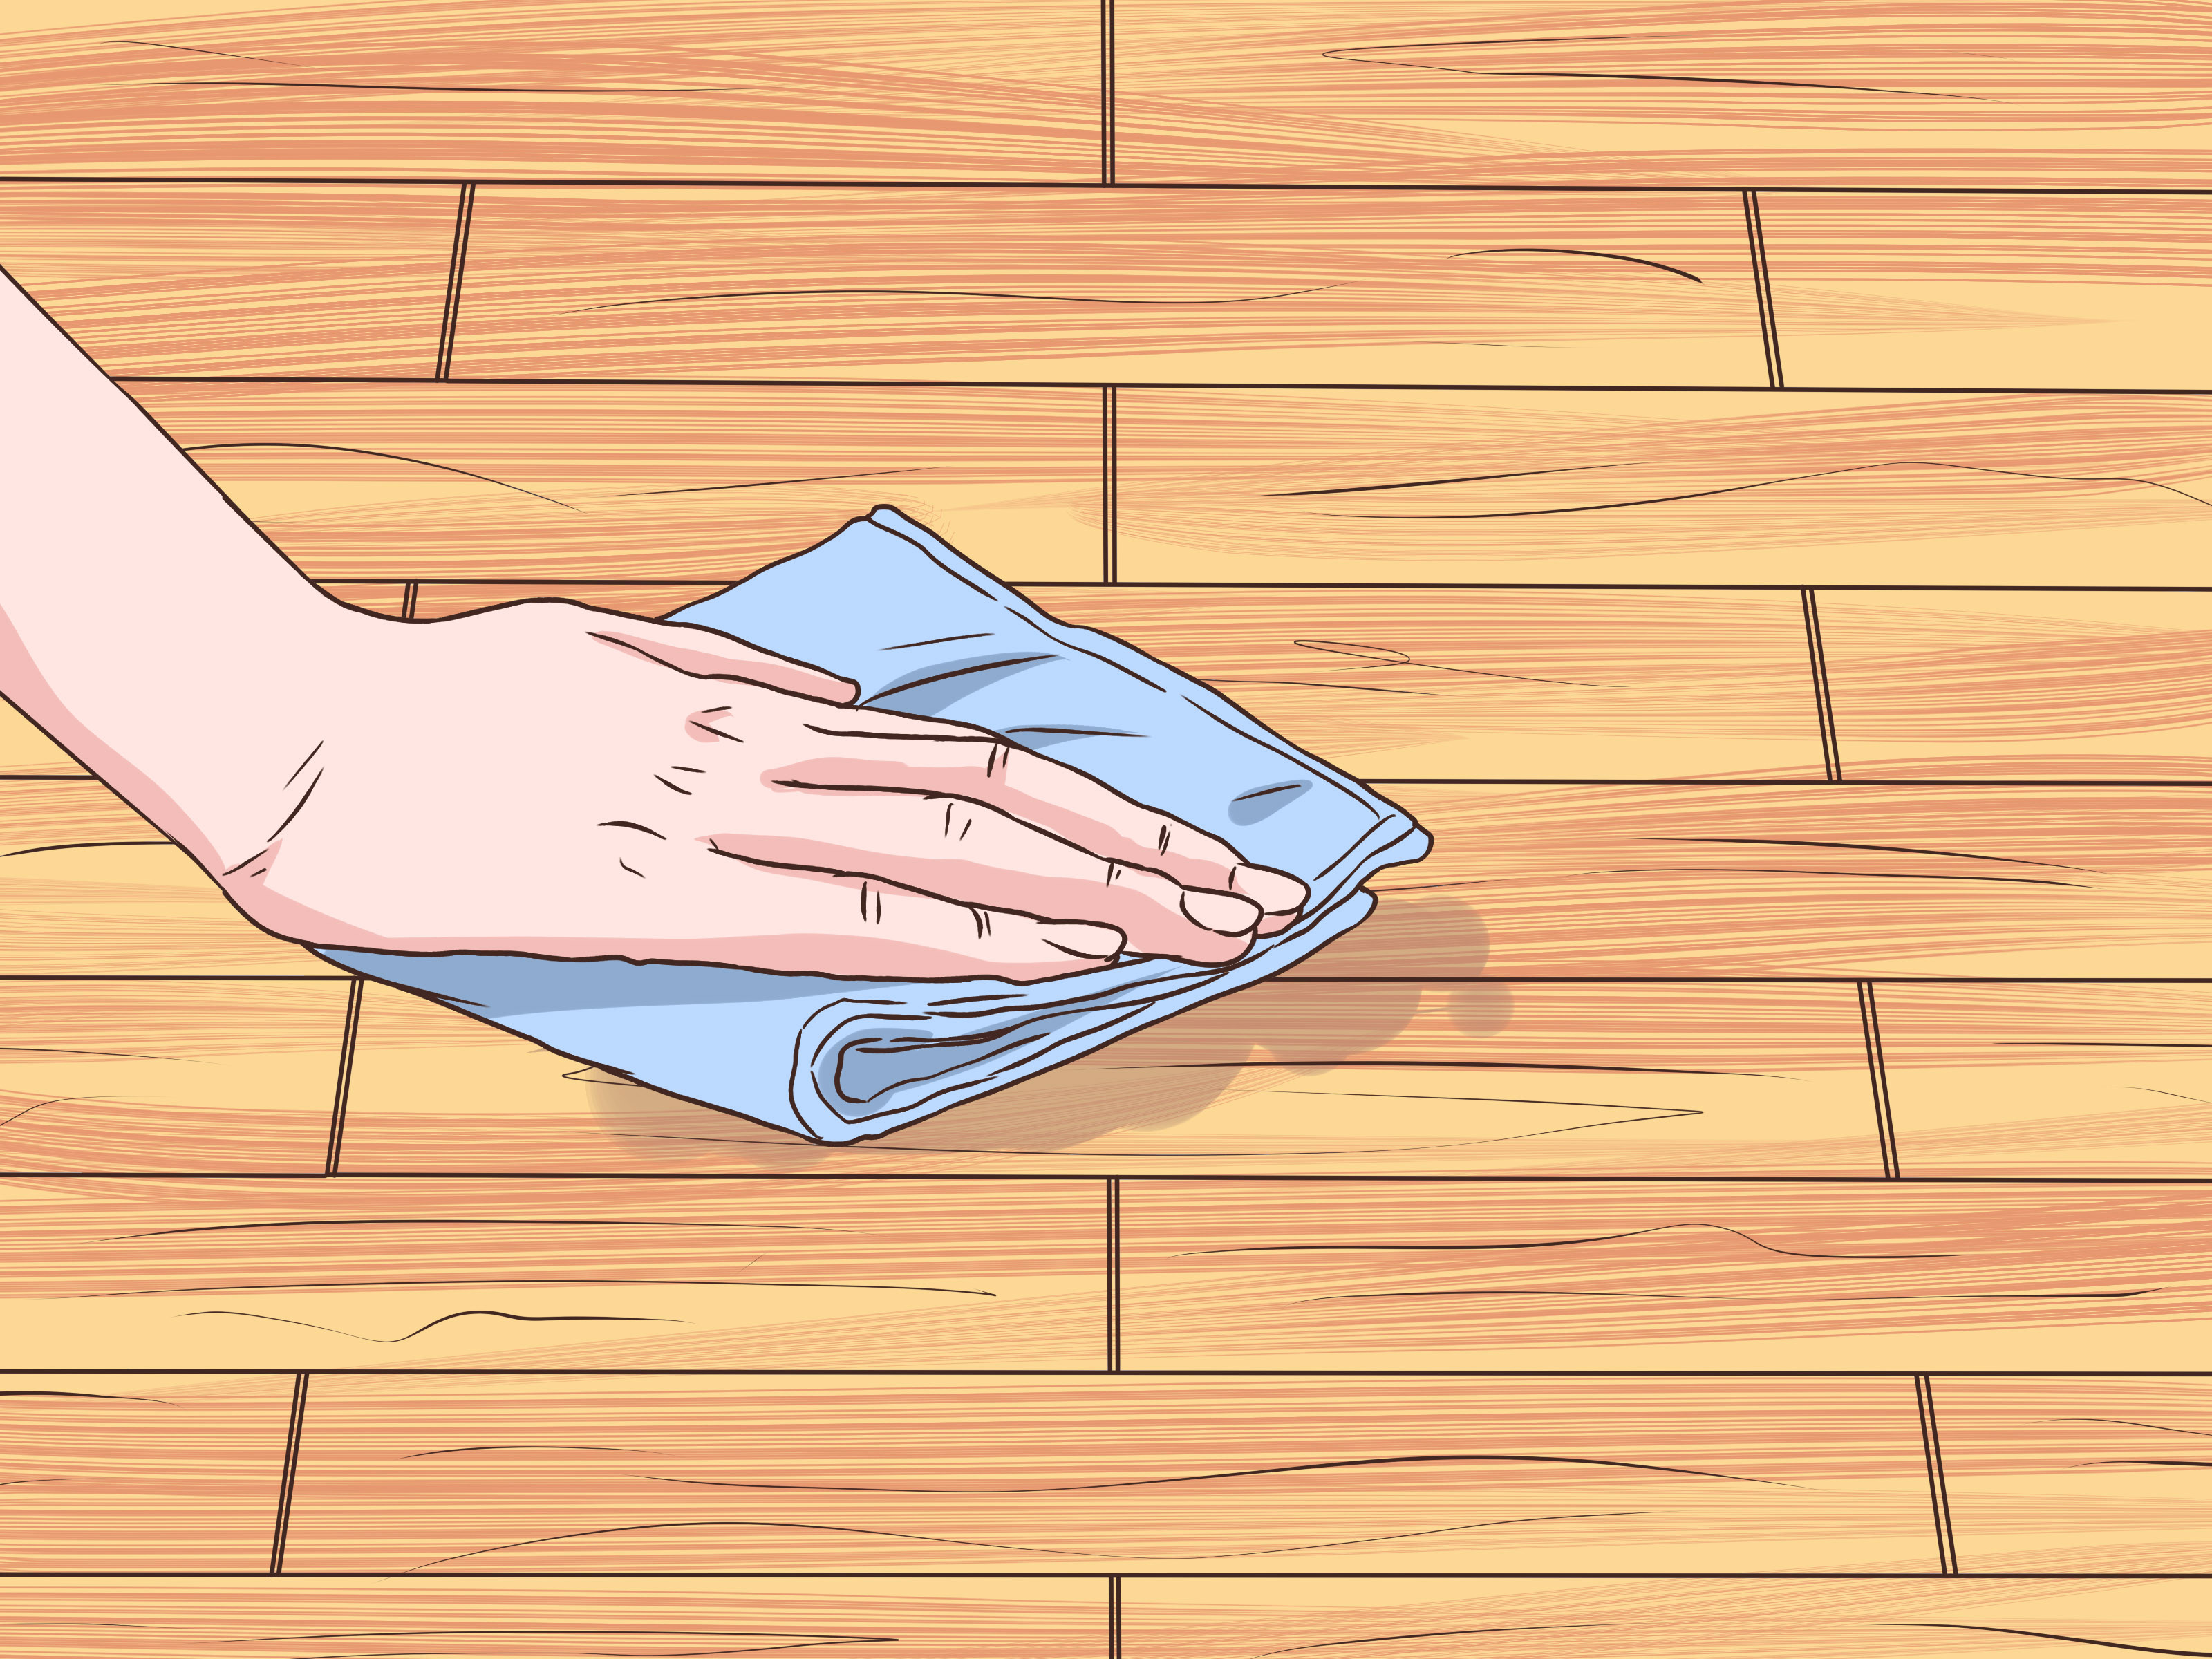 Best Hardwood Floor Adhesive Of How to Clean Sticky Hardwood Floors 9 Steps with Pictures with Clean Sticky Hardwood Floors Step 9